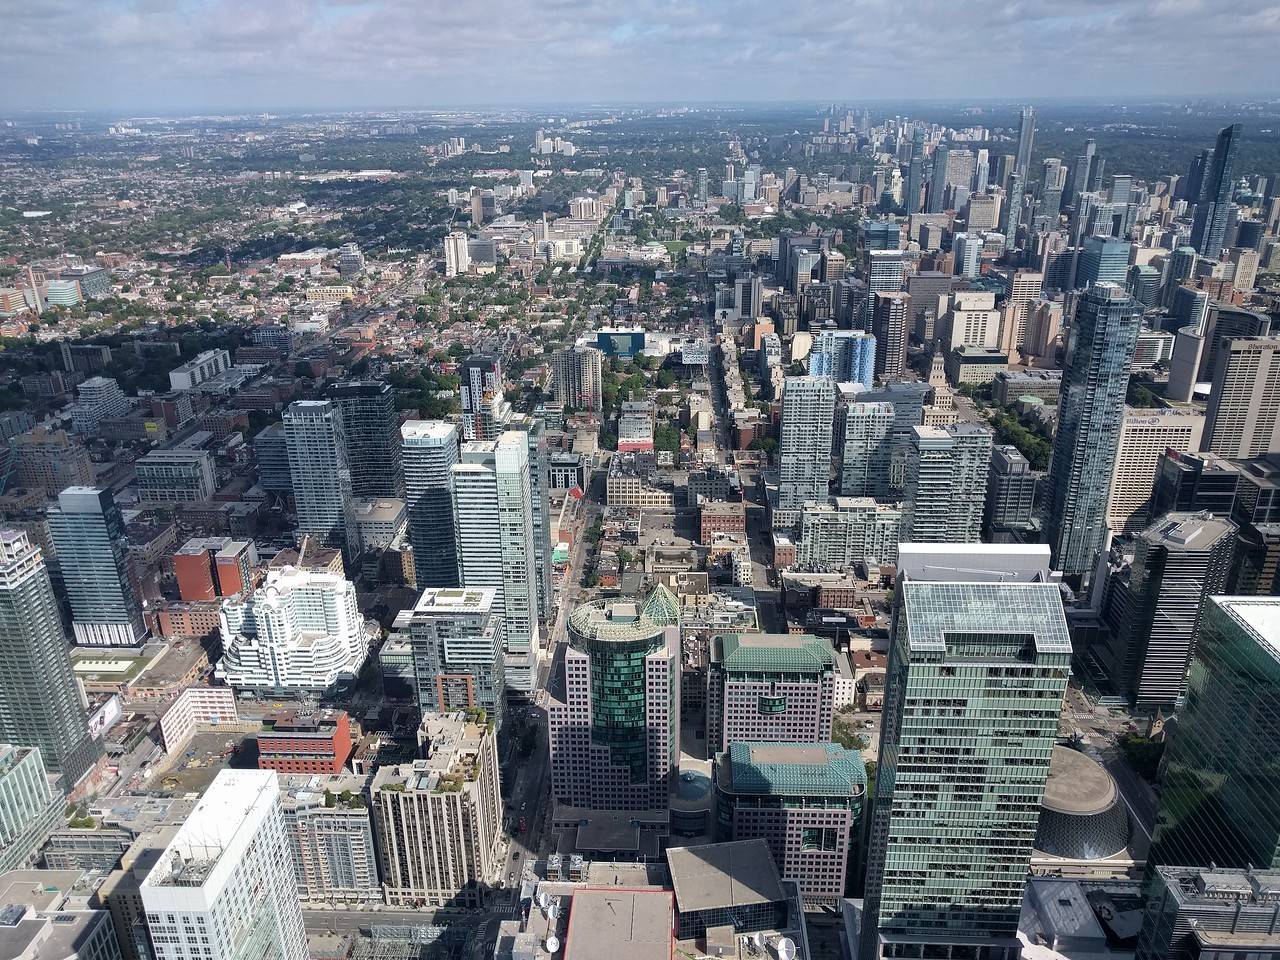 053 - Toronto - CN Tower - North View